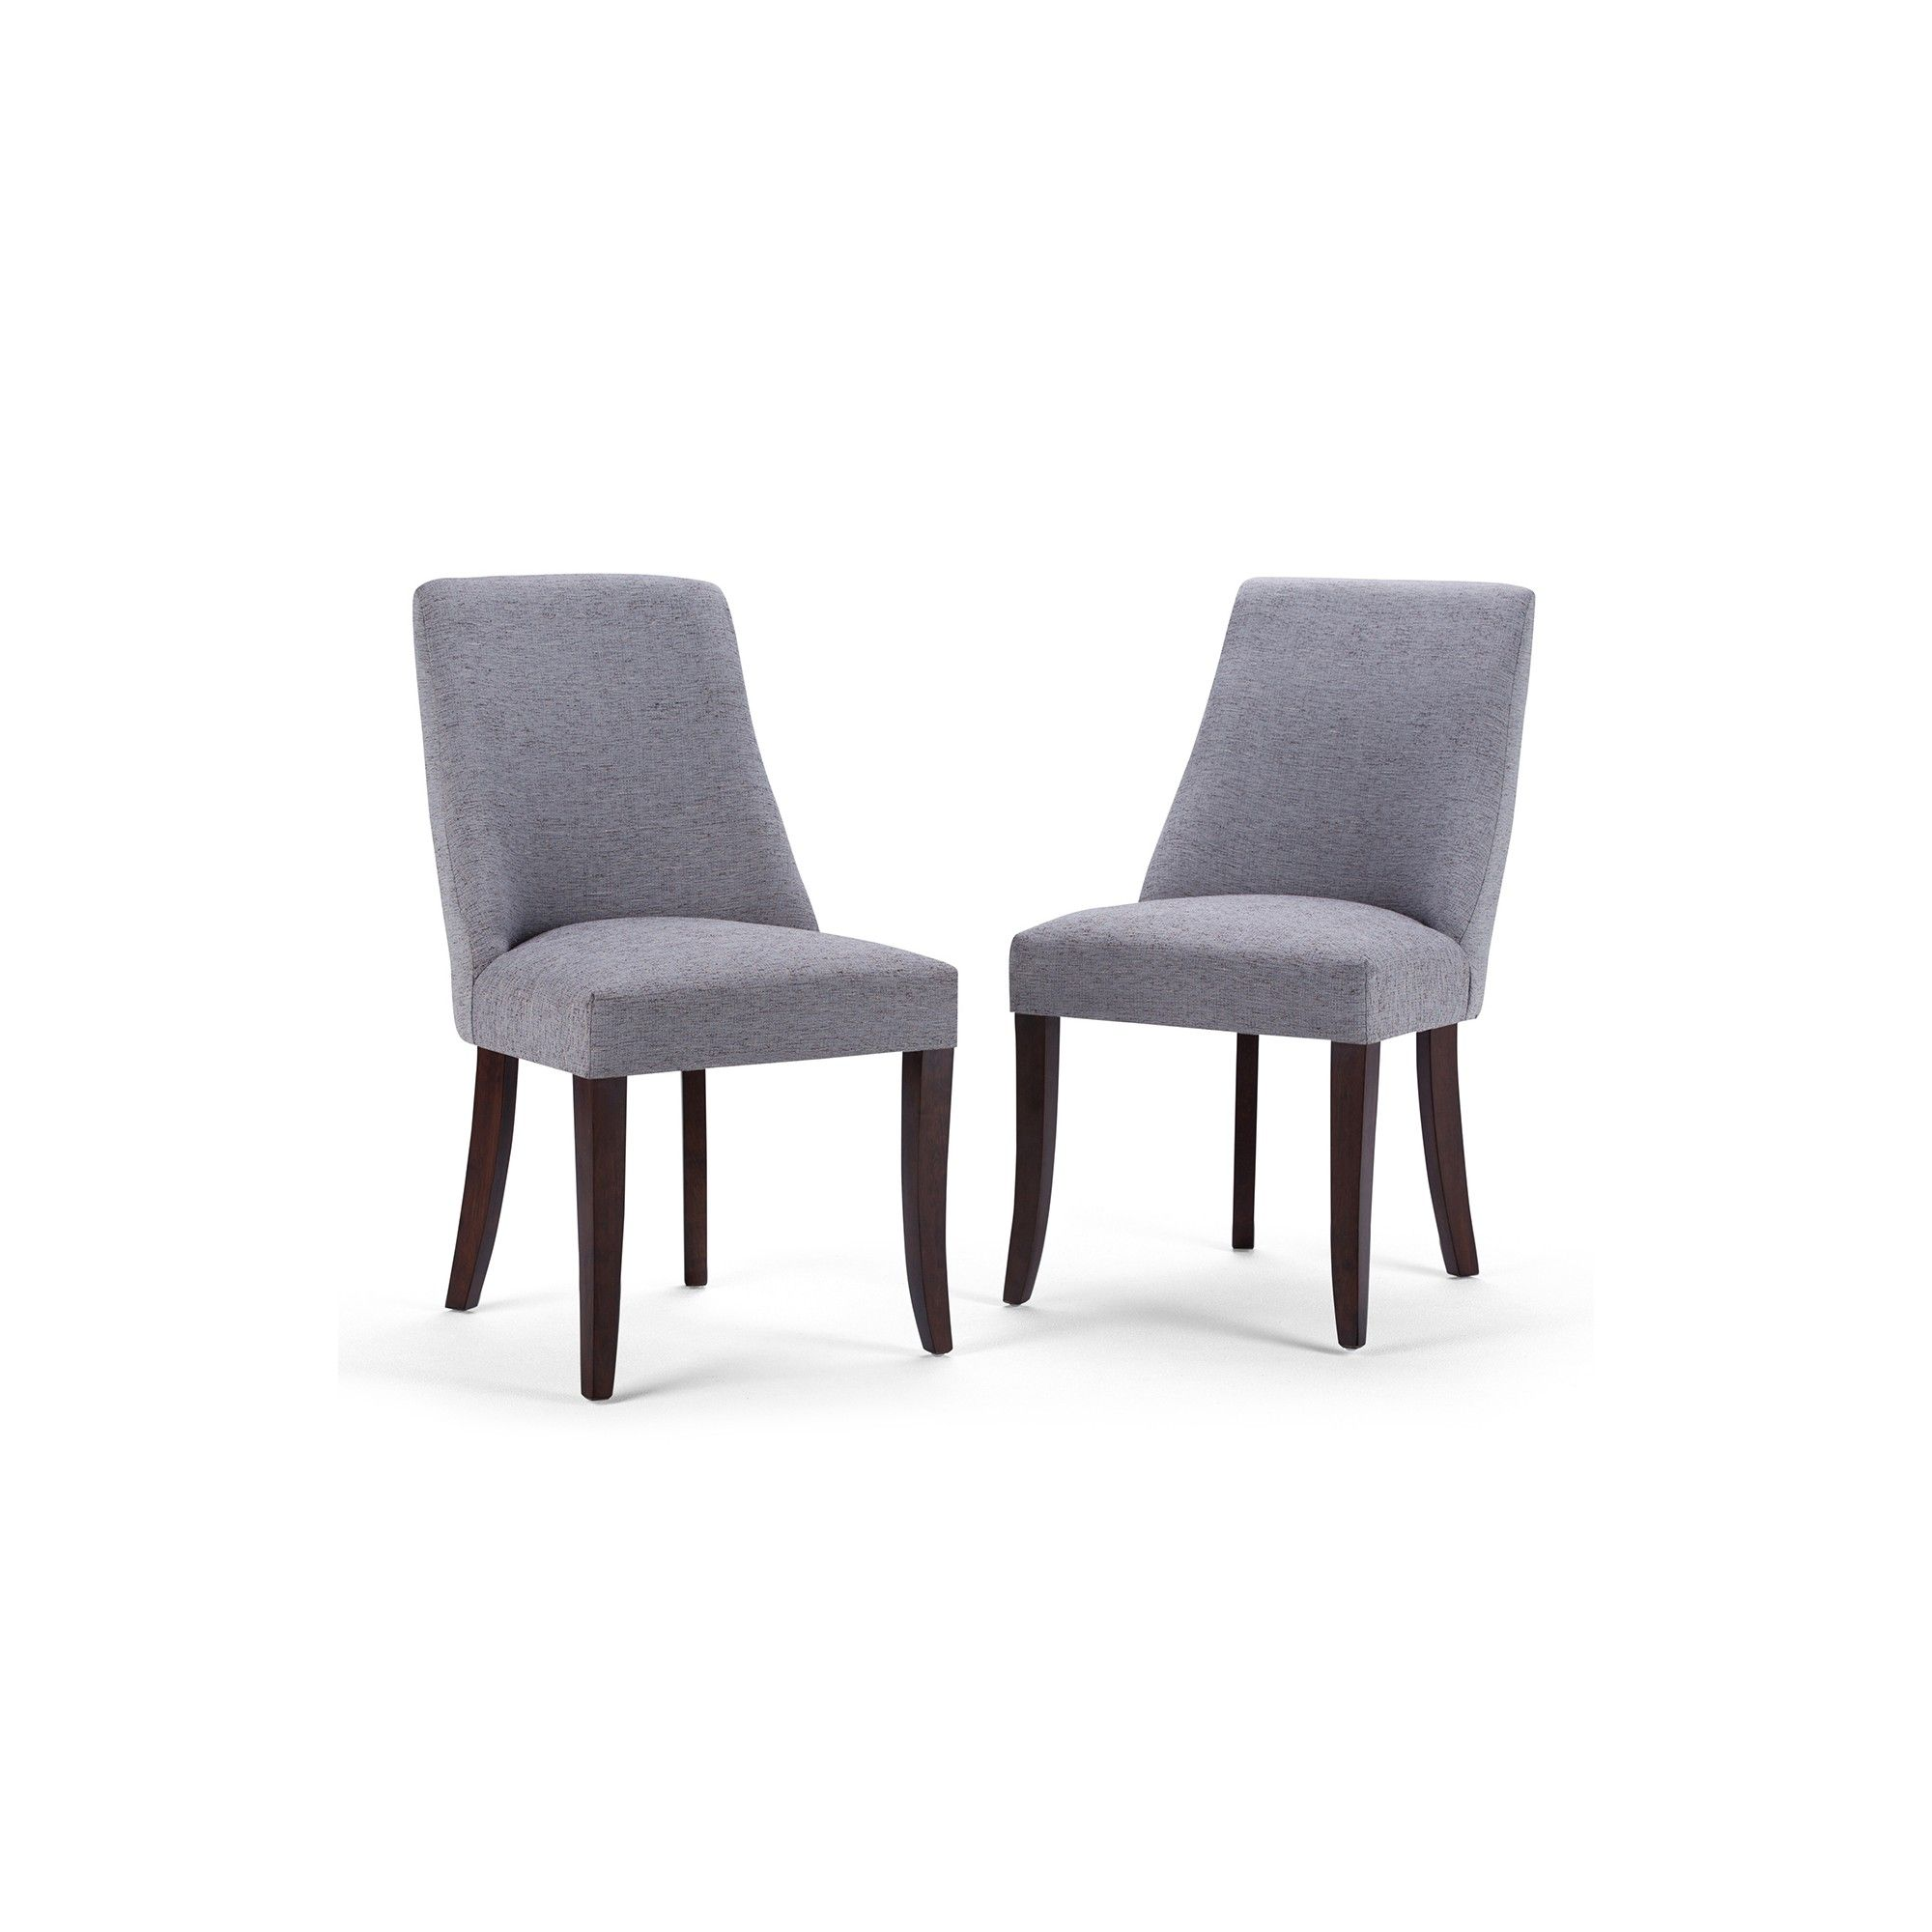 Set of 2 Haley Deluxe Dining Chair Gray Linen Look Fabric